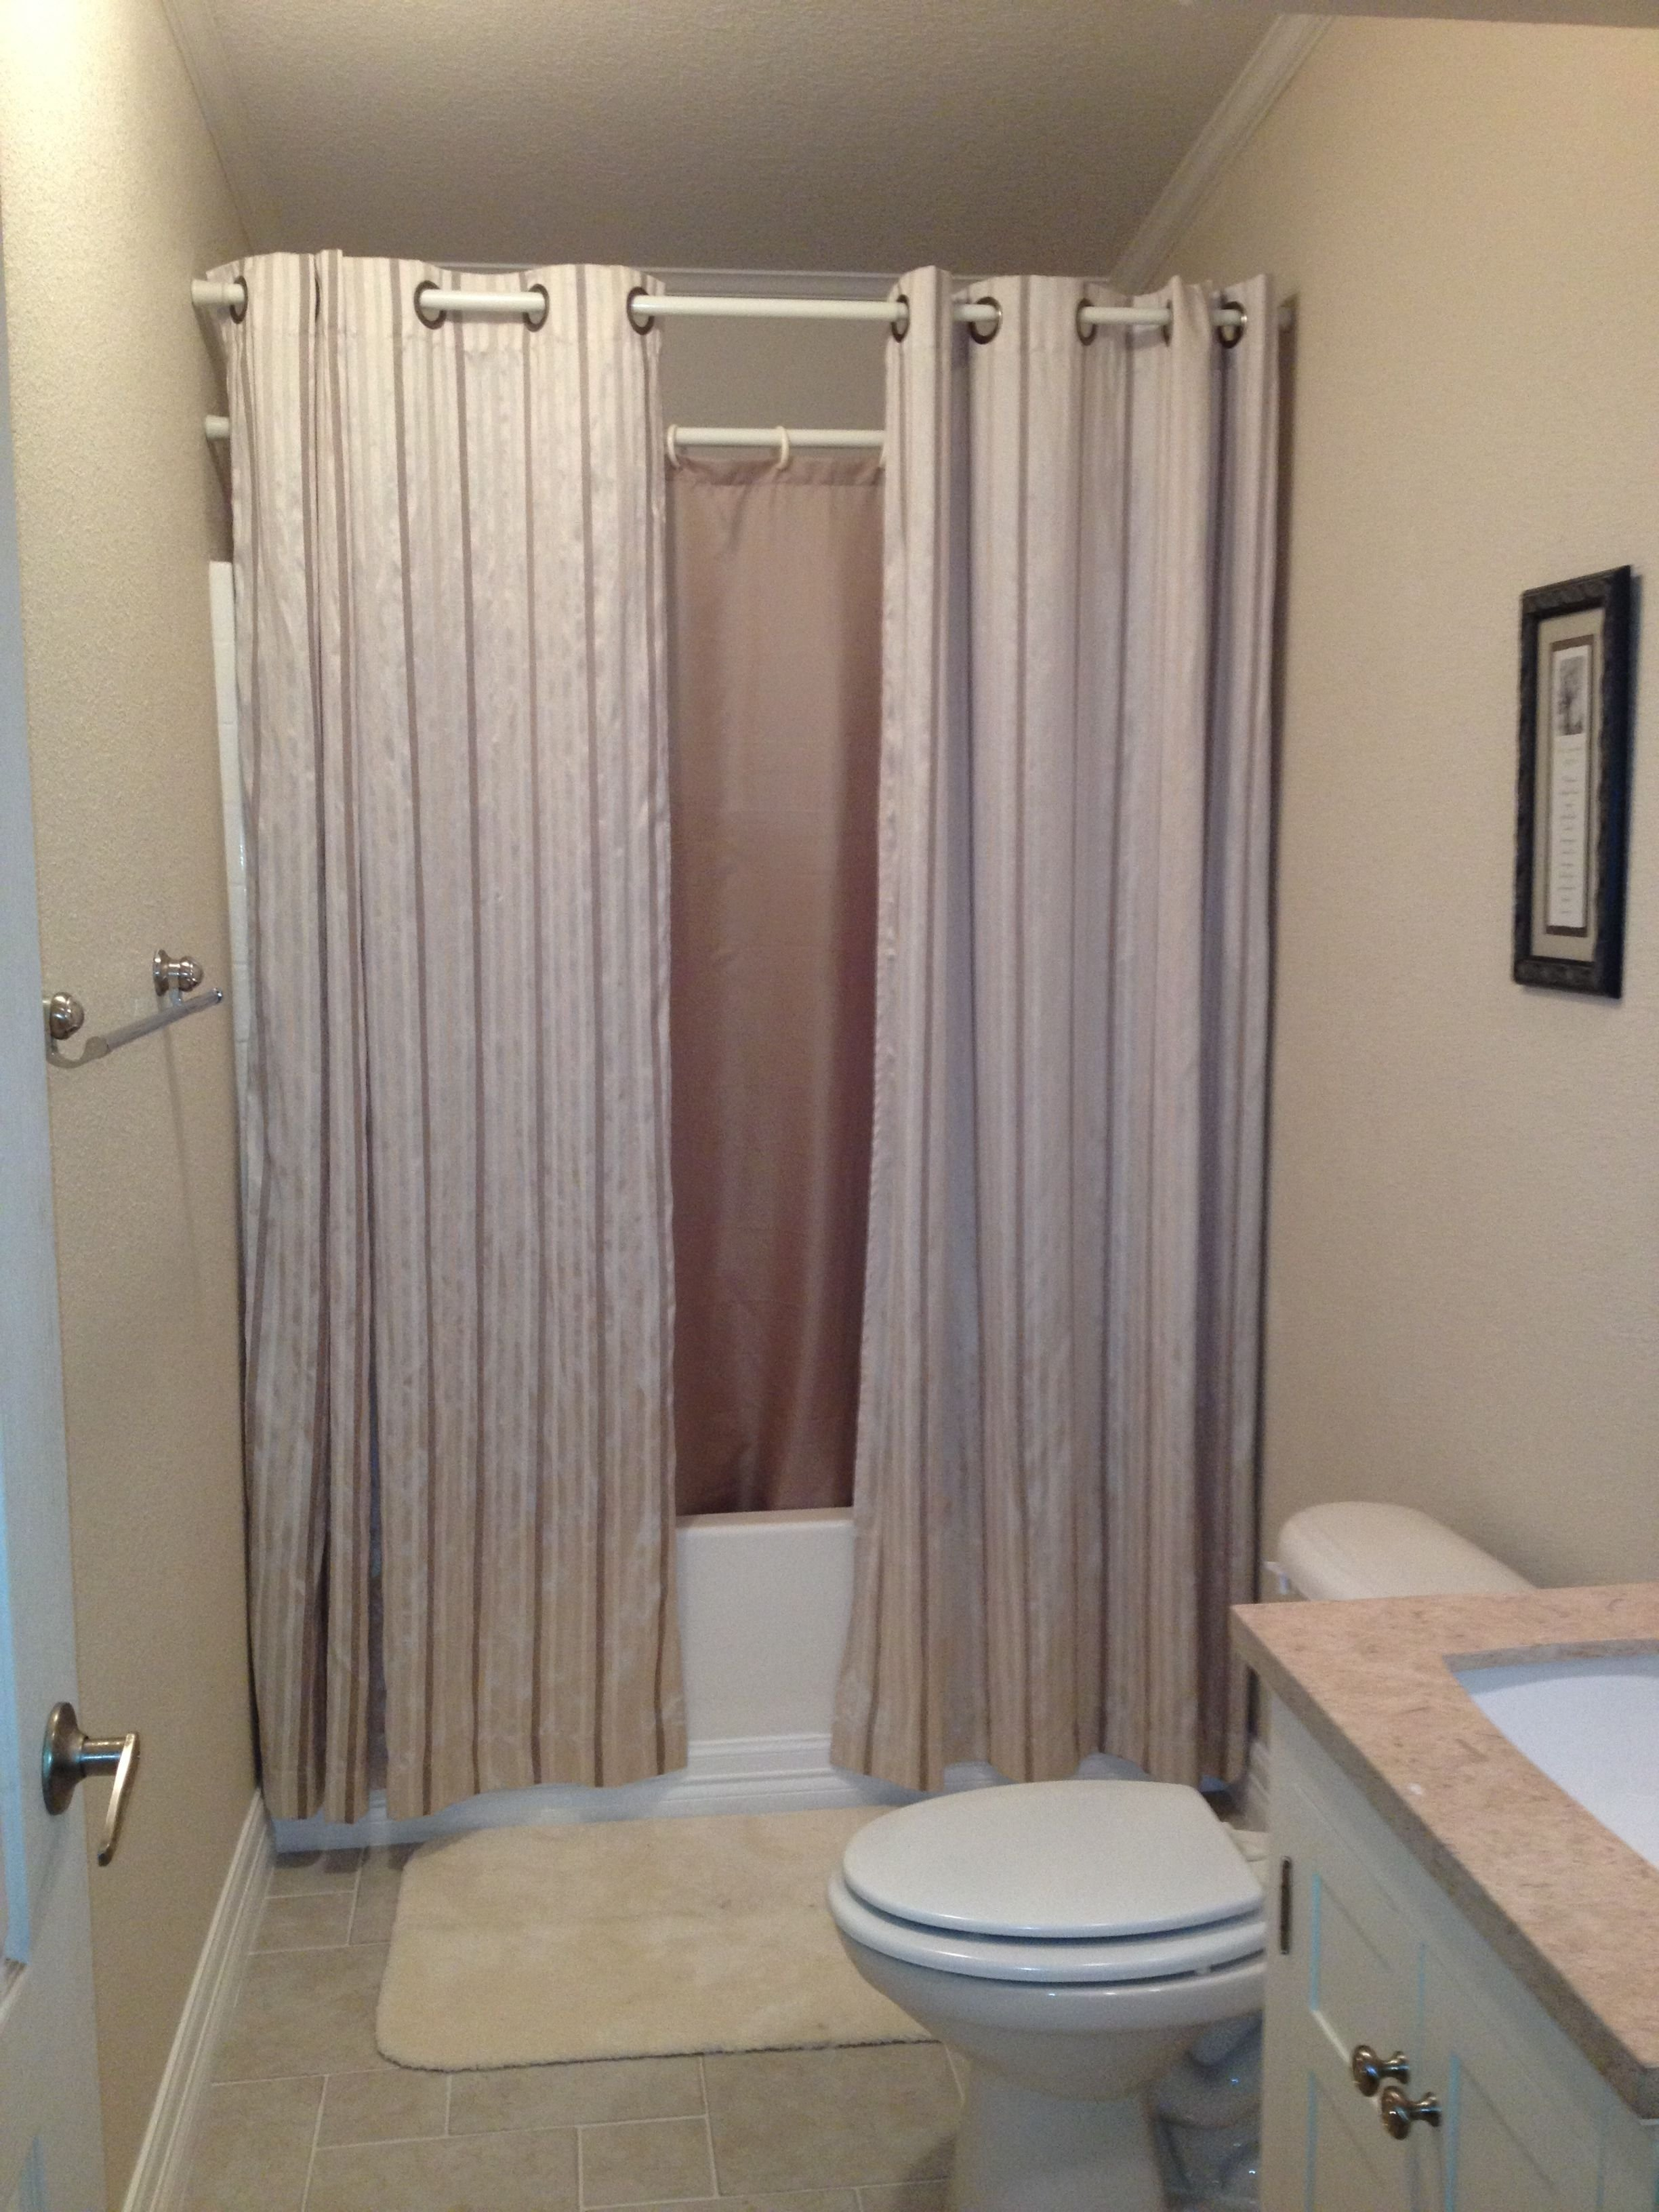 10 Trendy Shower Curtain Ideas For Small Bathrooms hanging shower curtains to make small bathroom look bigger 2020